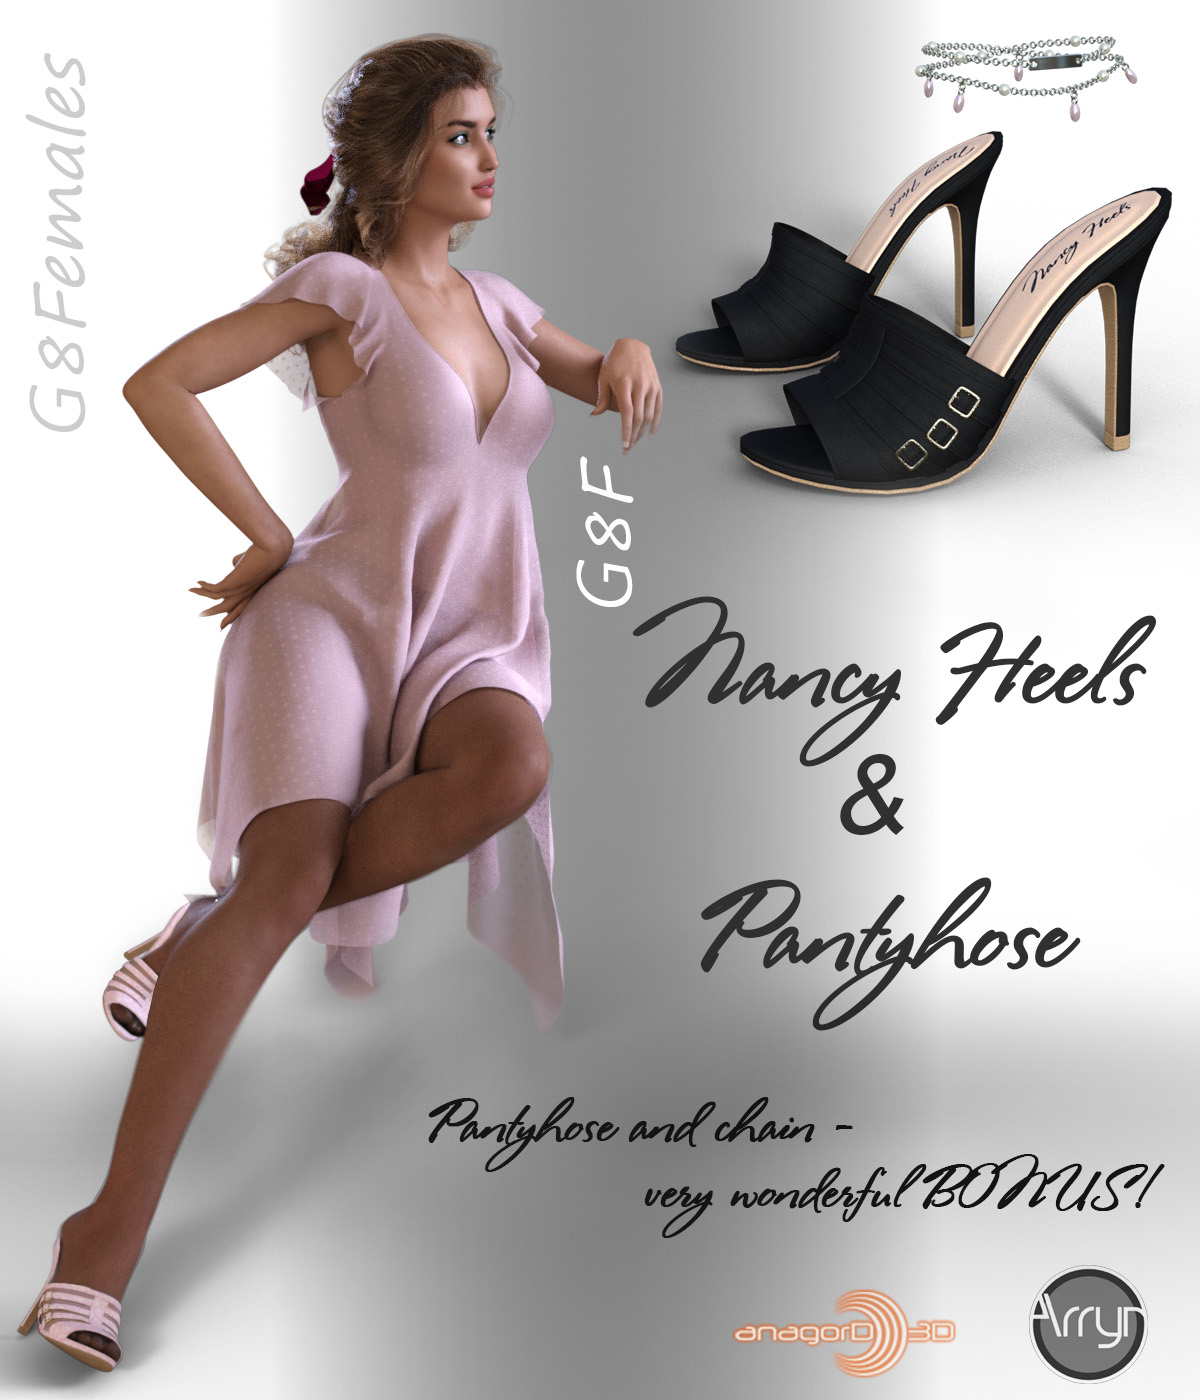 Nancy Heels and Pantyhose G8F